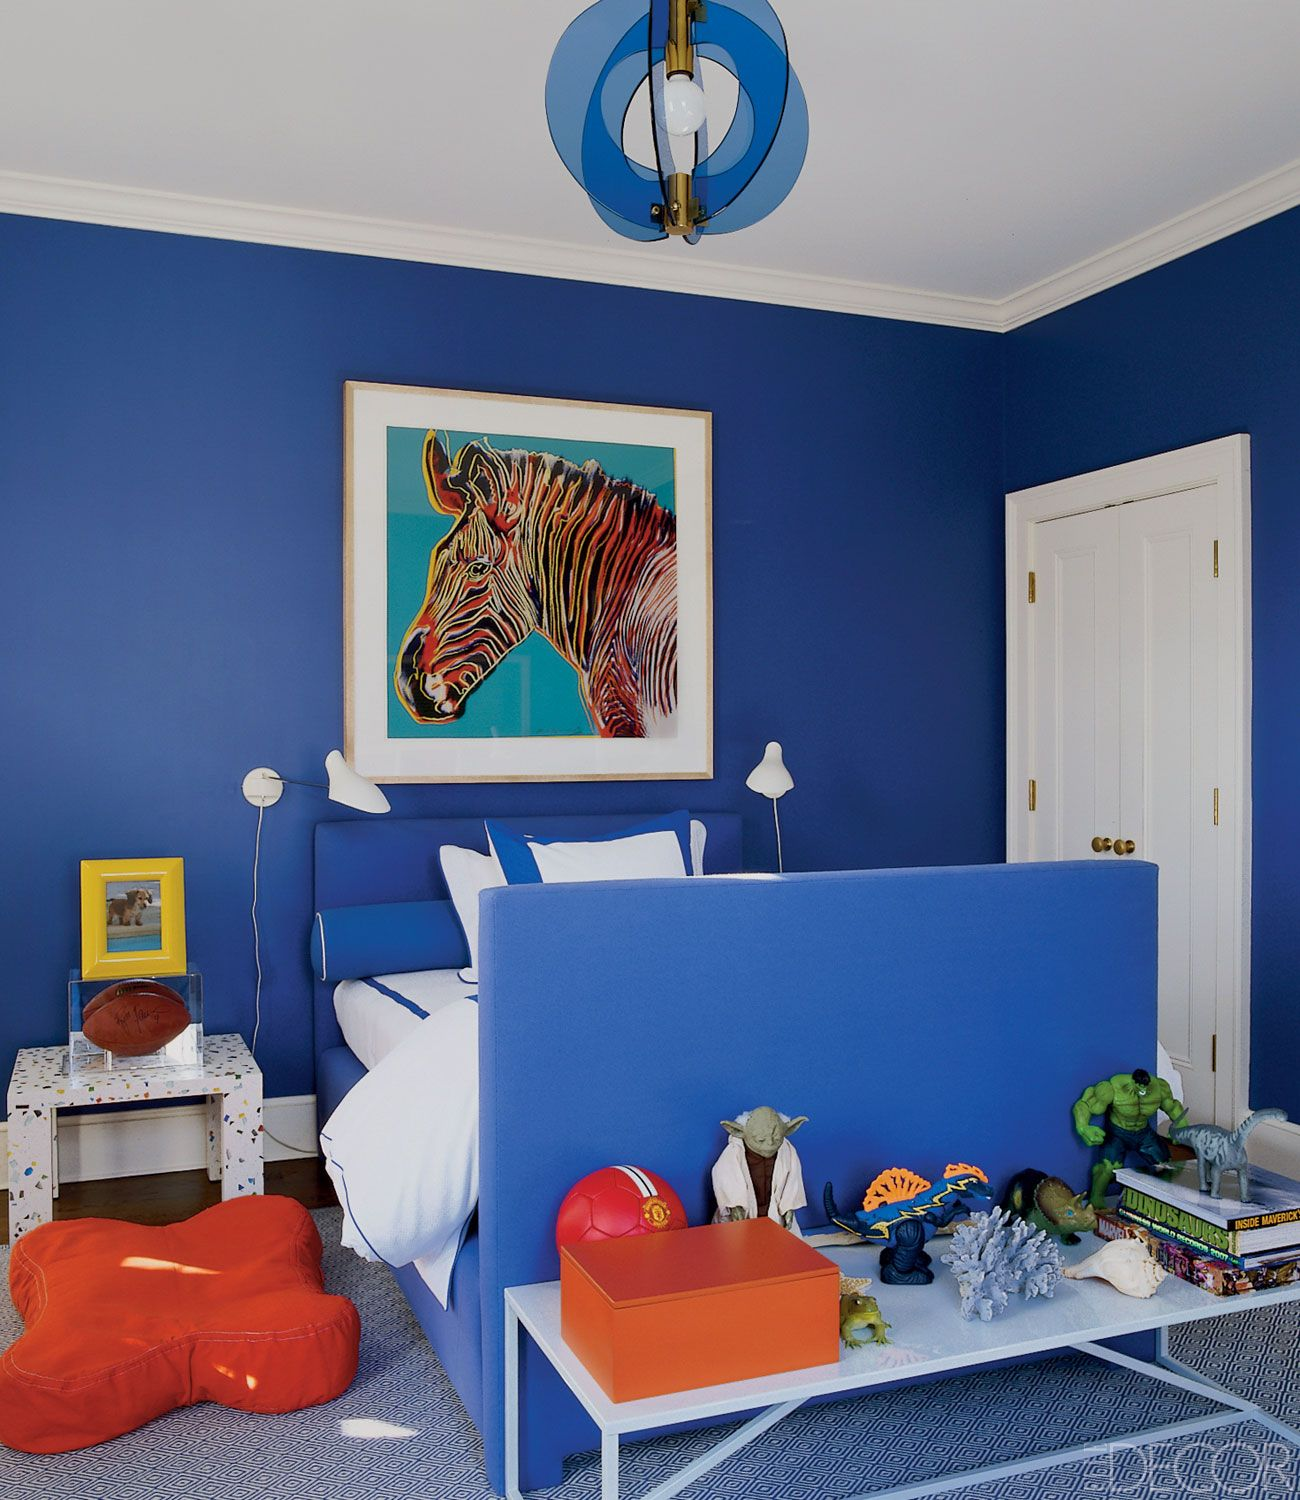 Kids Room Decor Ideas 15 Cool Boys Bedroom Ideas  Decorating A Little Boy Room